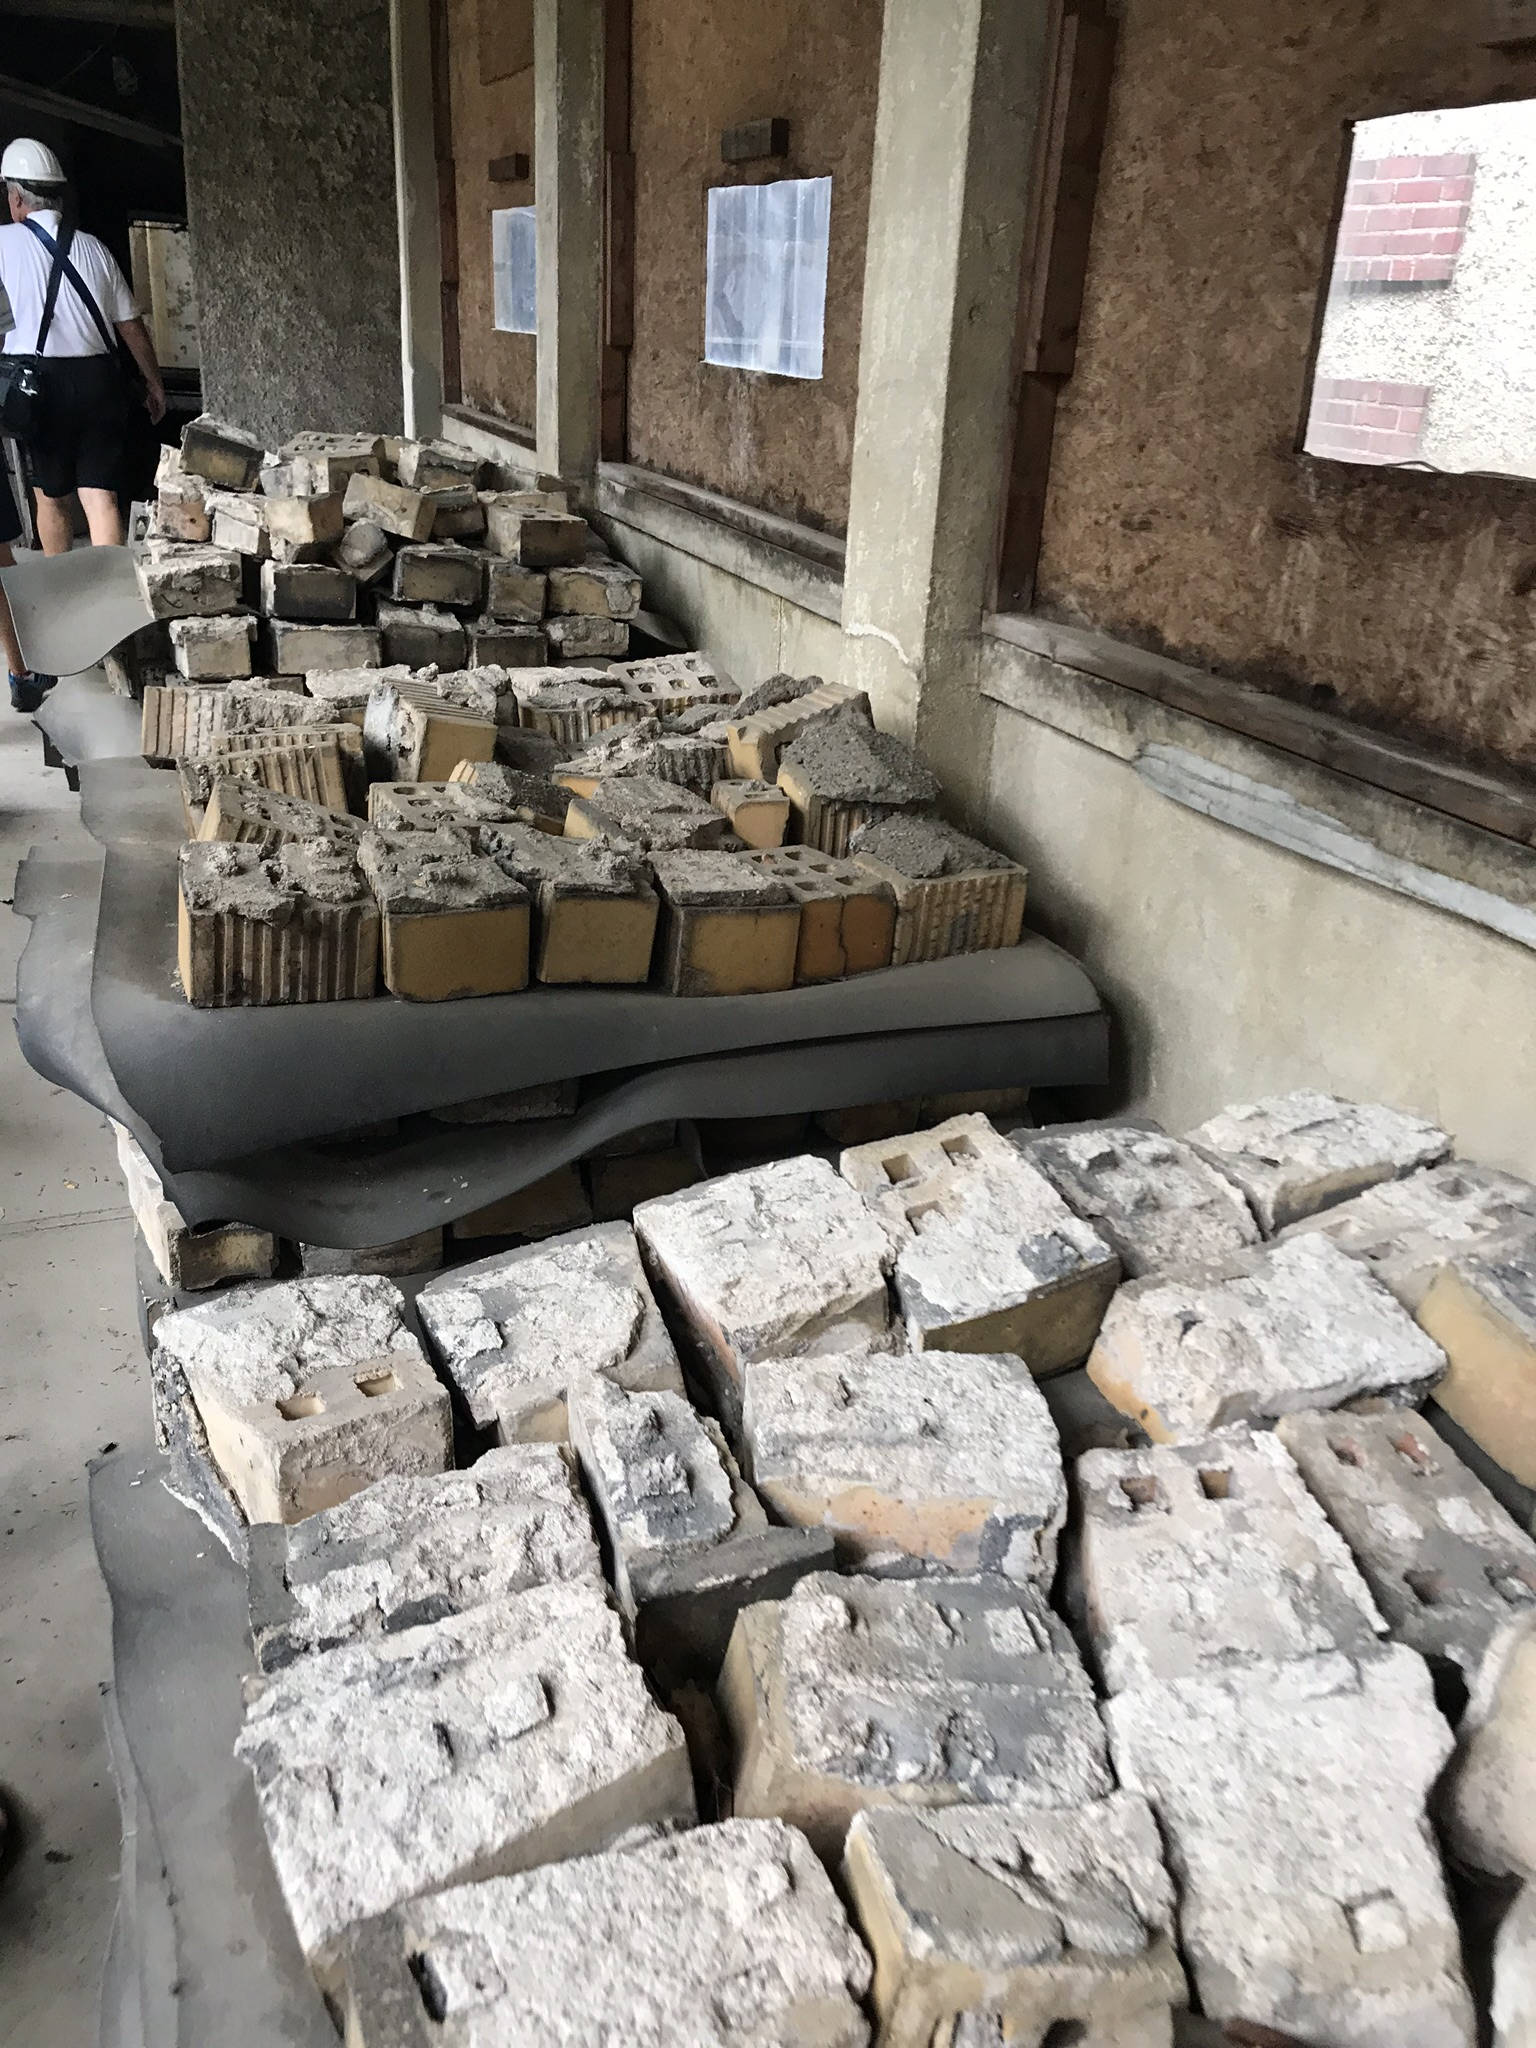 Bricks that will be used to restore the hospital. I believe they were from the outside of the building.